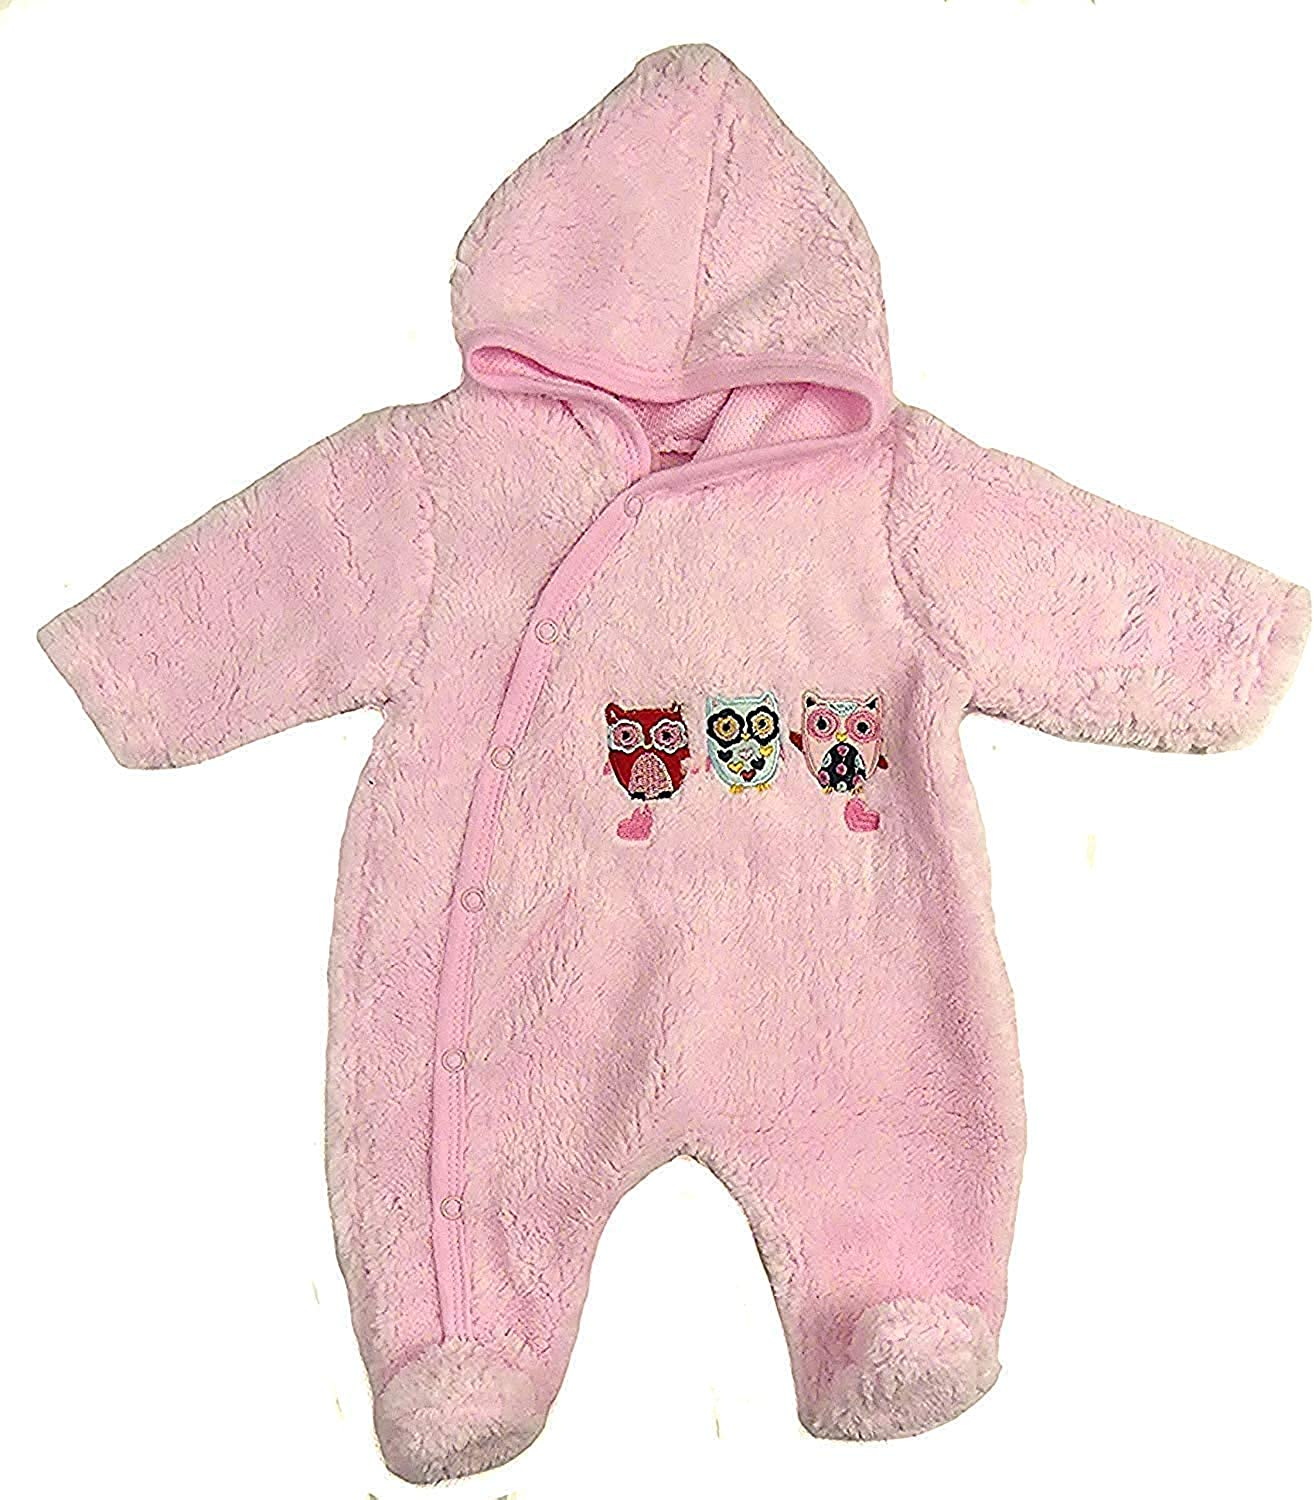 Bebe Bonito Baby Fleece All in one Lightweight All in One Snowsuit NB 0-3m 3-6m